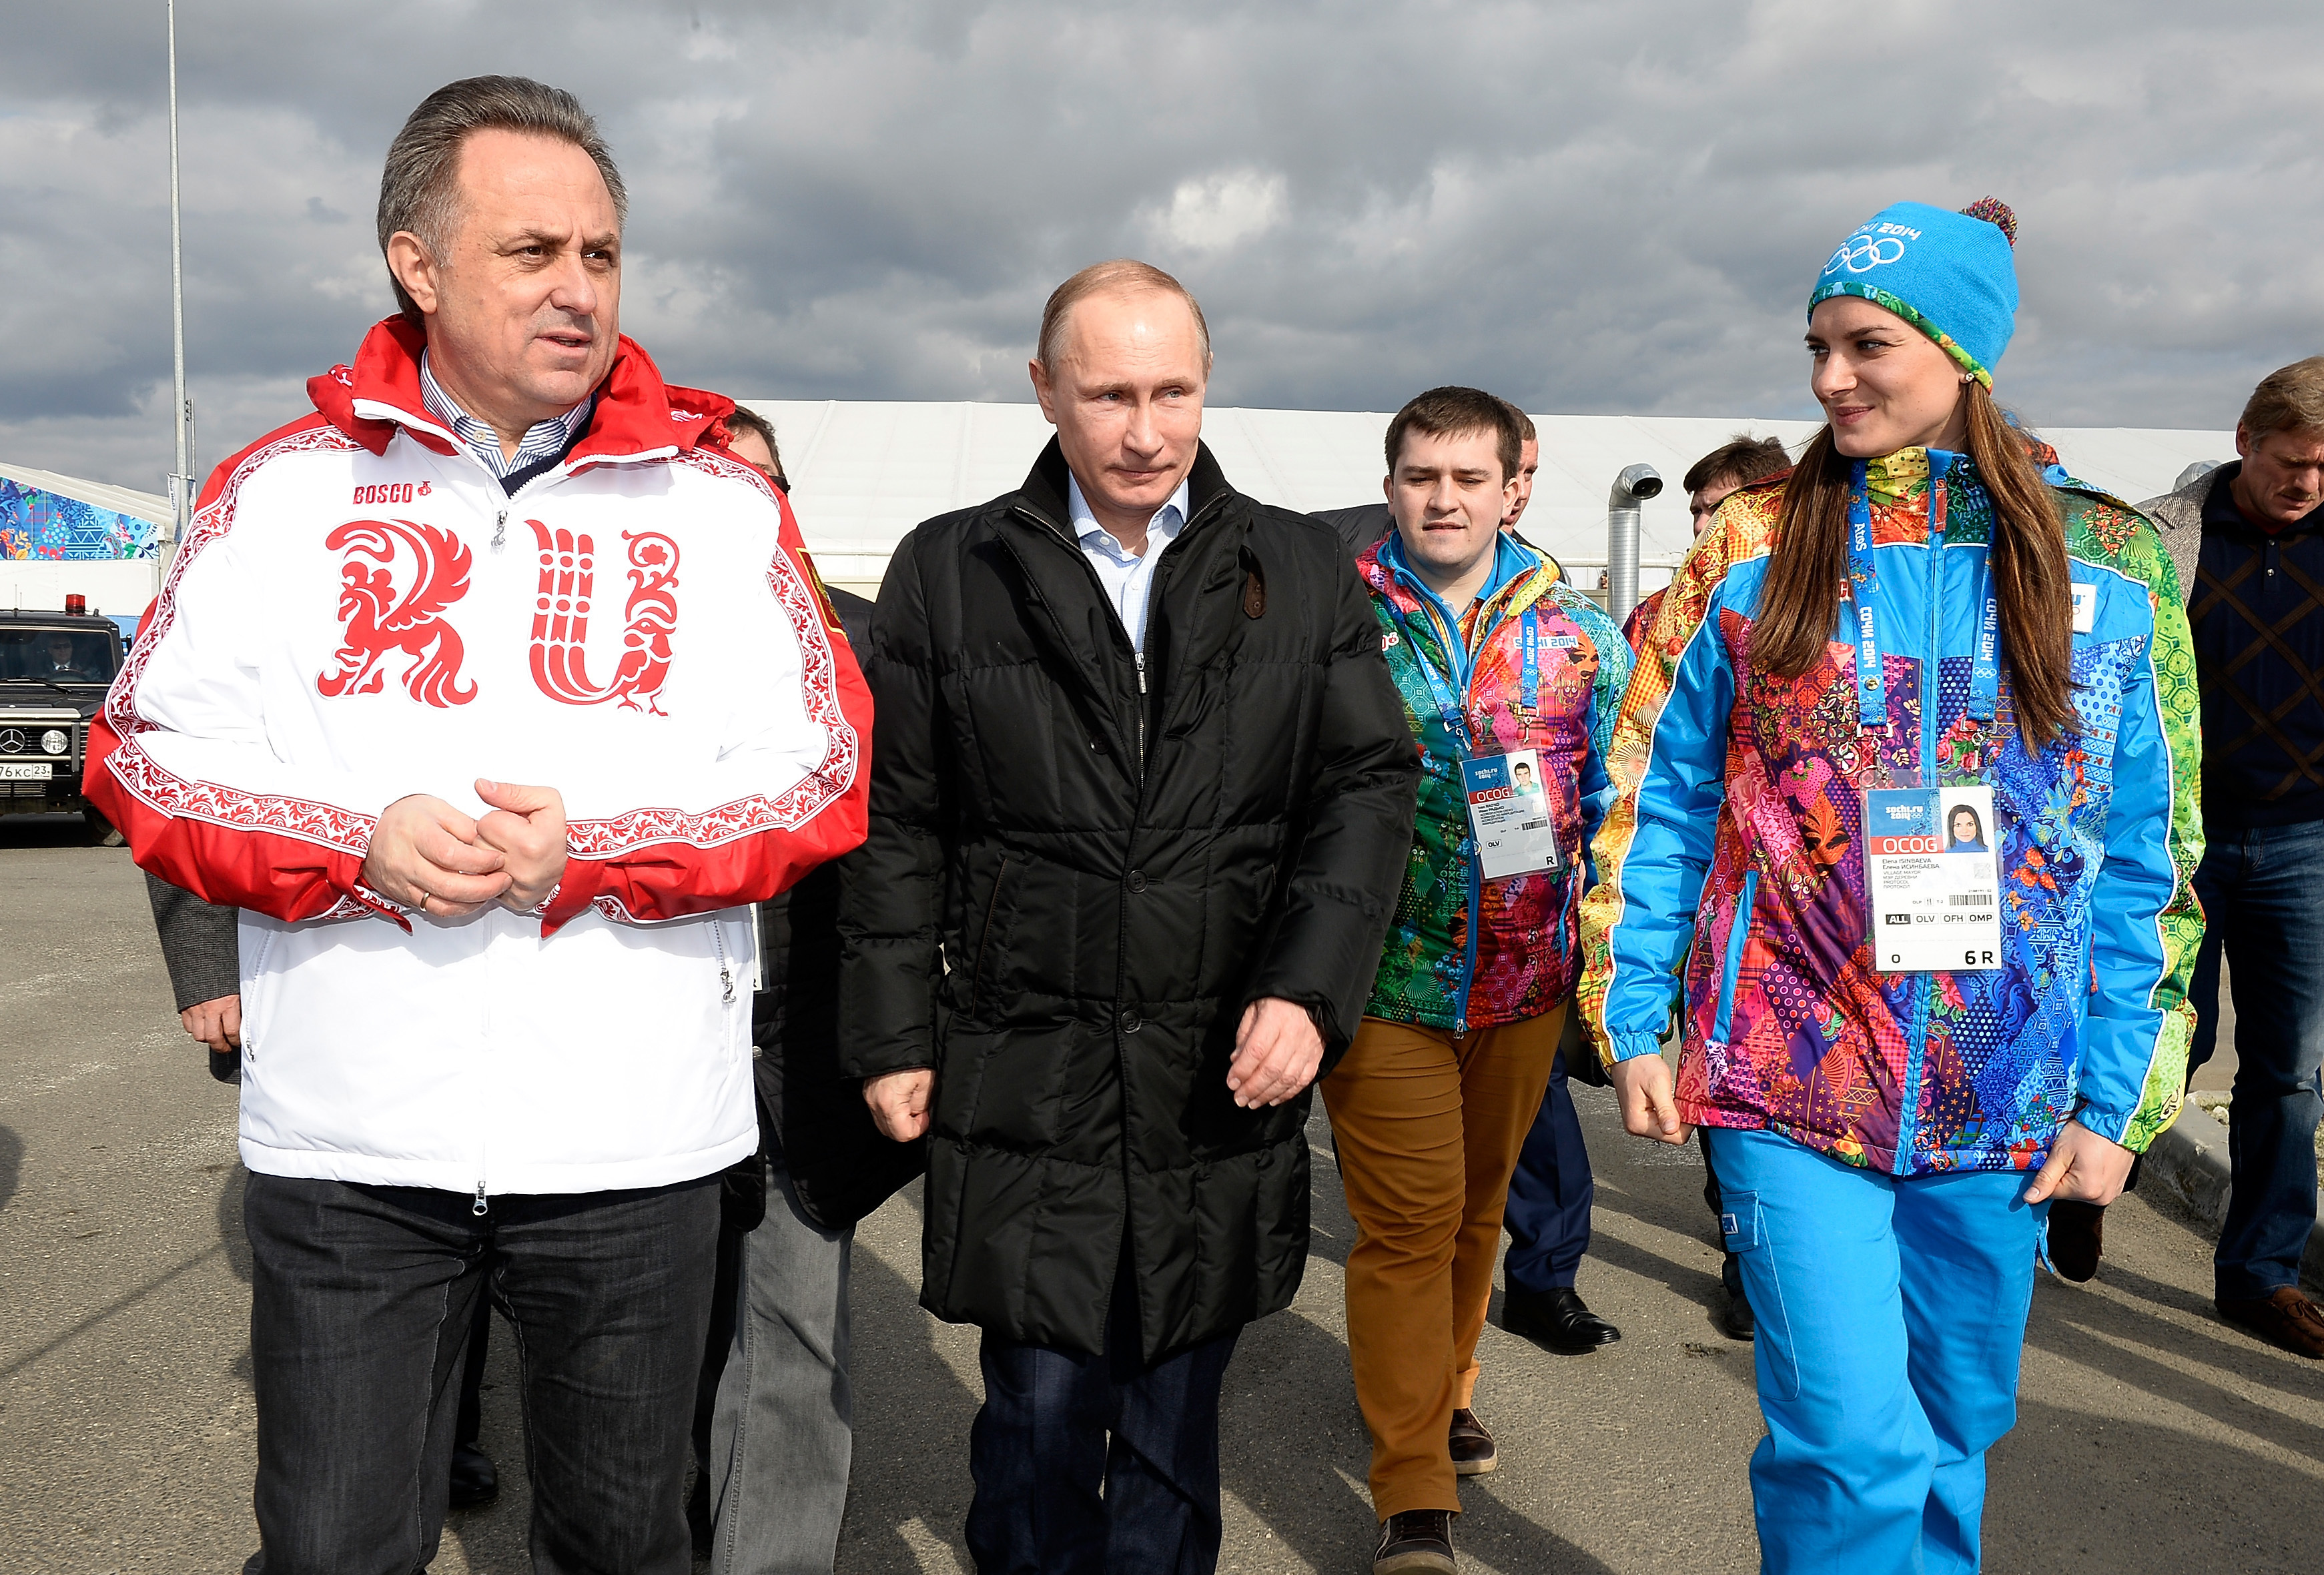 FILE - In this Feb. 5, 2014 file photo Russian Minister of Sport, Tourism and Youth policy Vitaly Mutko, left, Russian President Vladimir Putin, center, and Olympic Village Mayor and Pole Vaulter Yelena Isinbayeva visit the Coastal Cluster Olympic Village